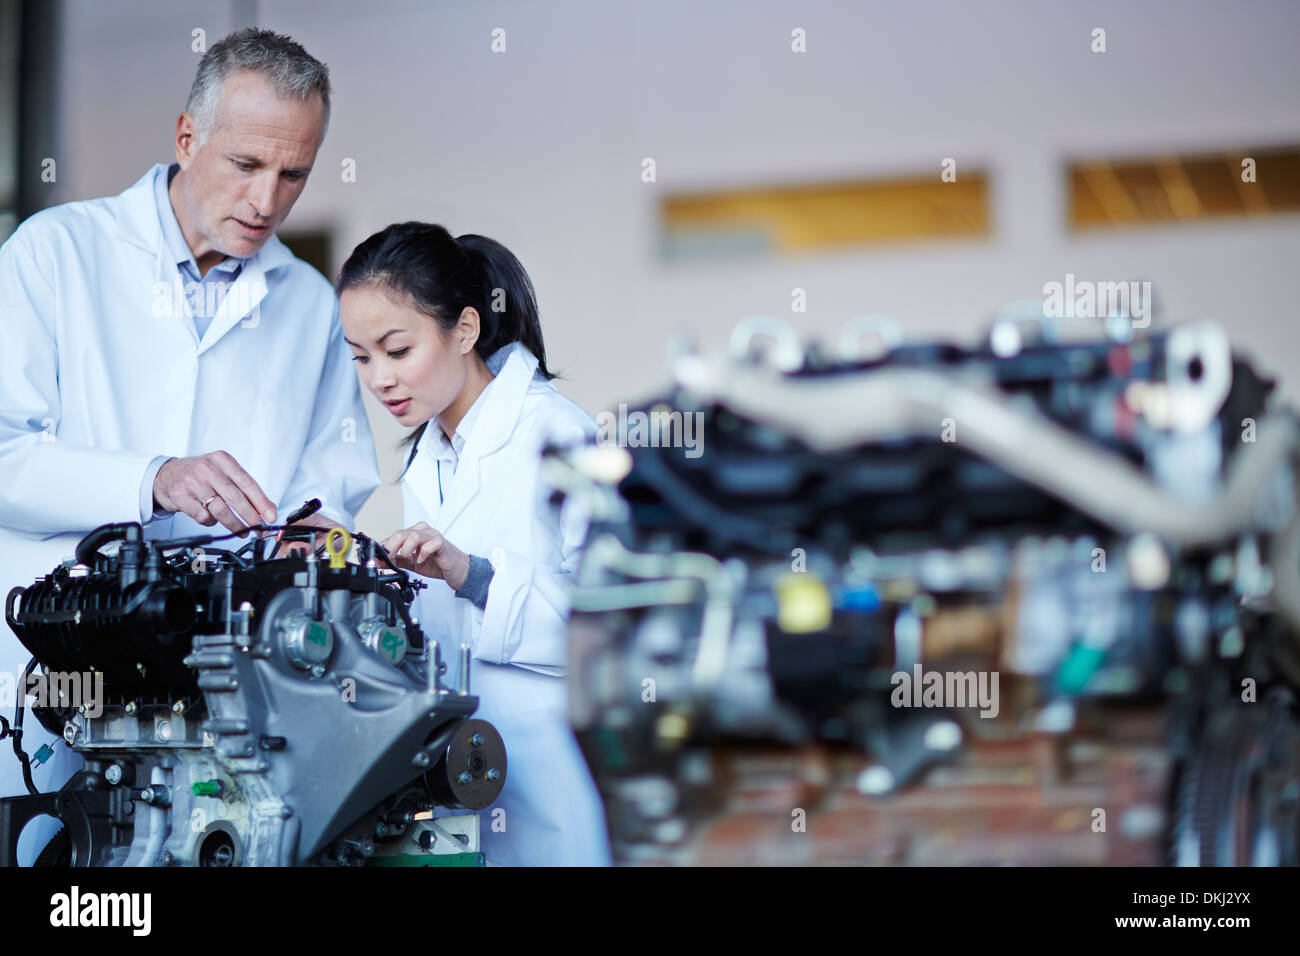 Scientists working on machine - Stock Image